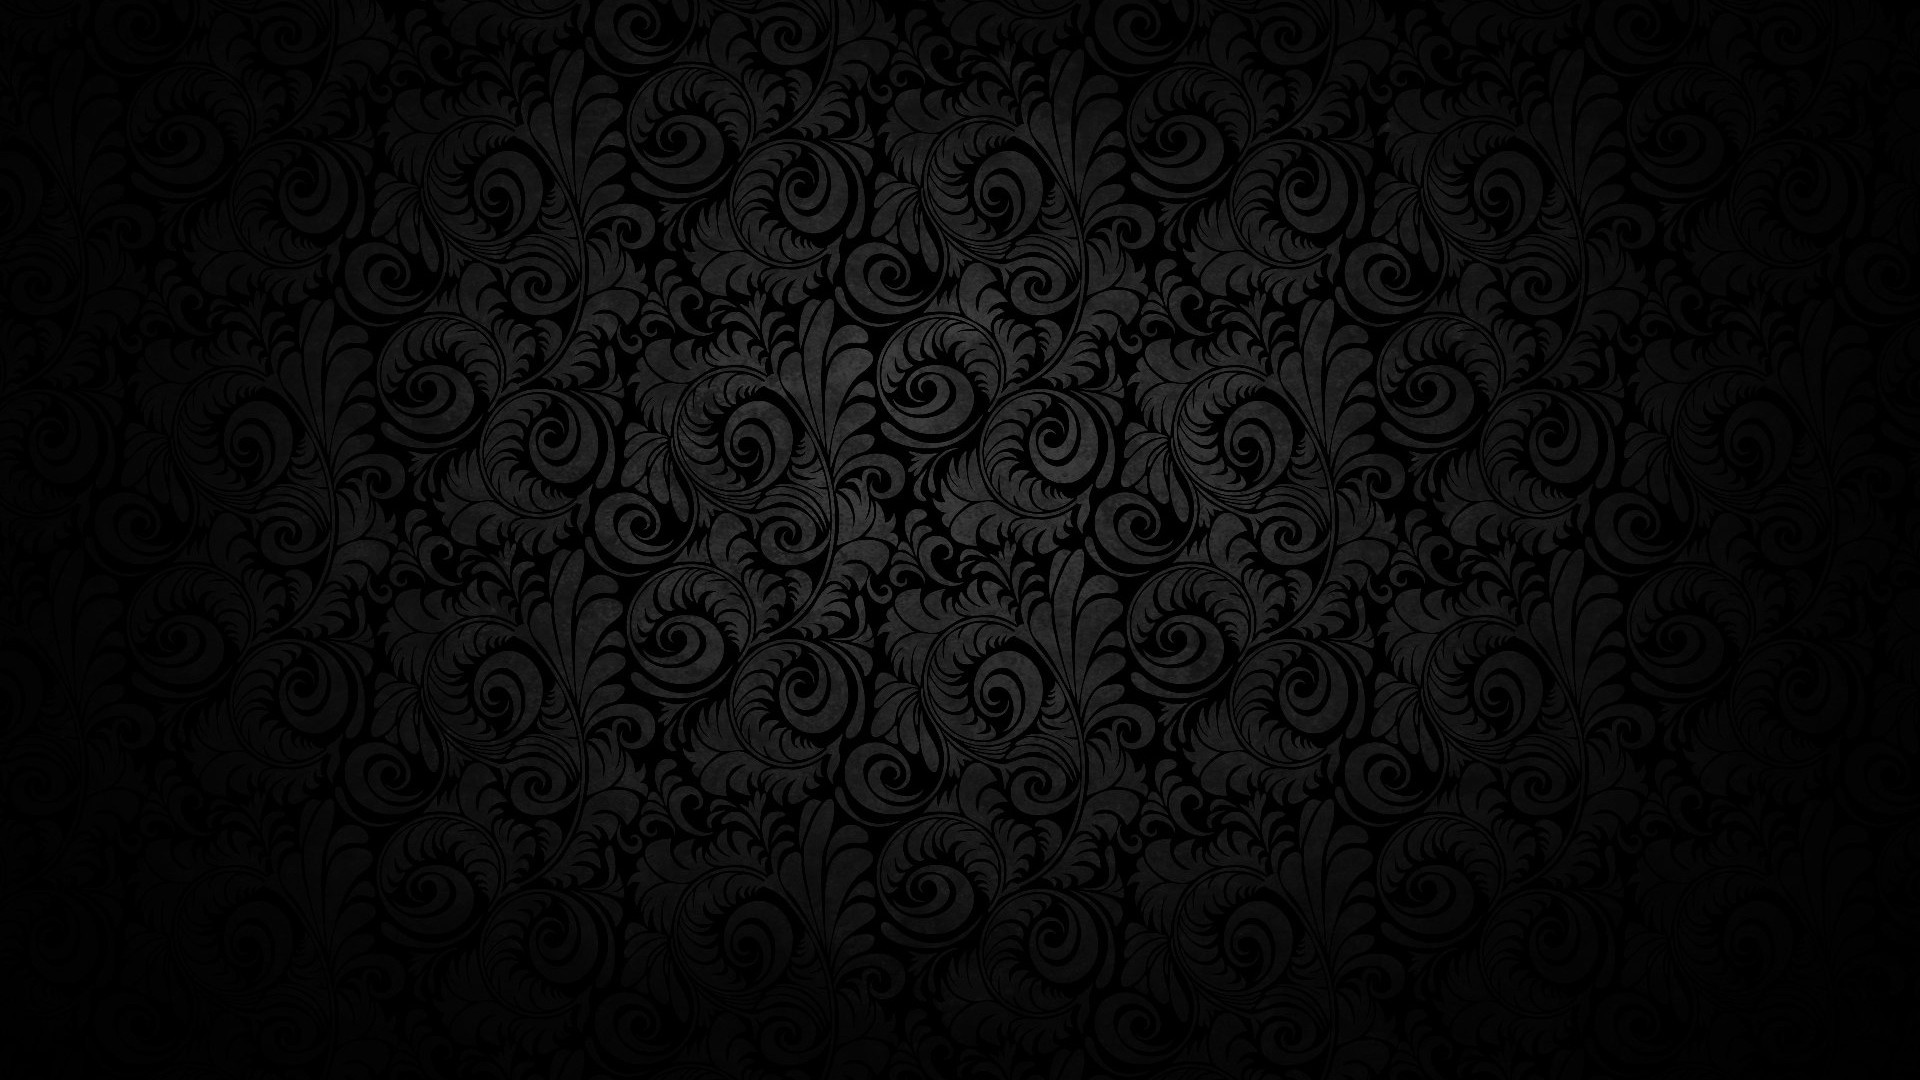 HD Texture Wallpaper 1